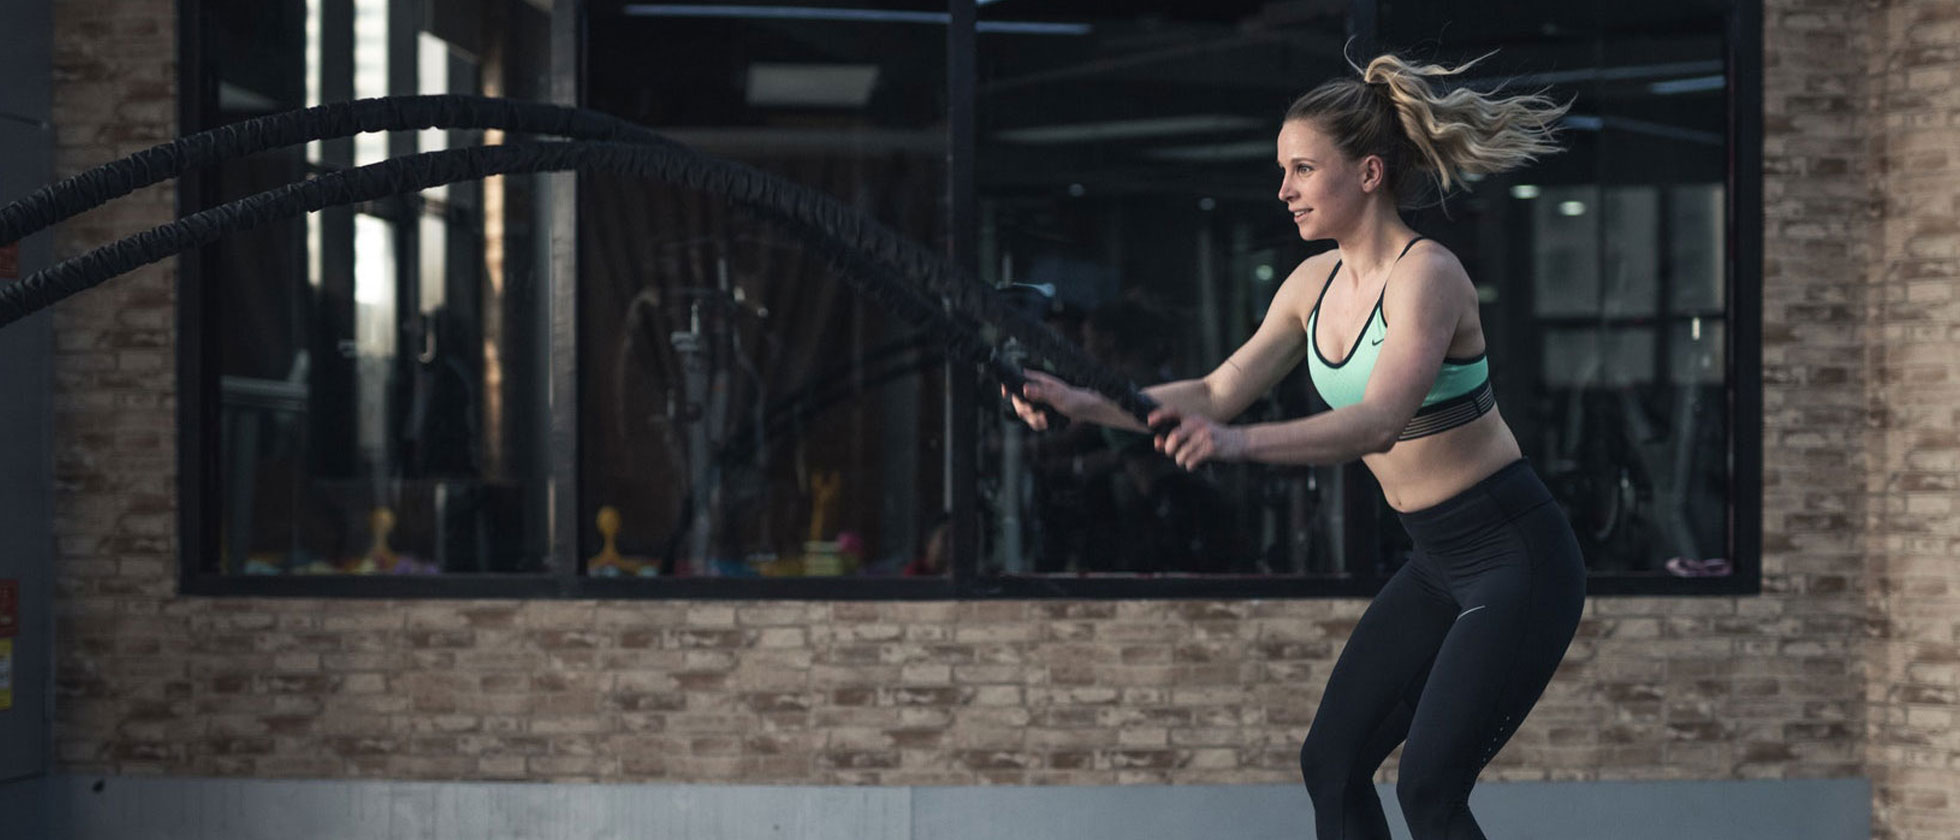 Why Personal Training Studio Is Ranked One of the Best Gyms In Garden City